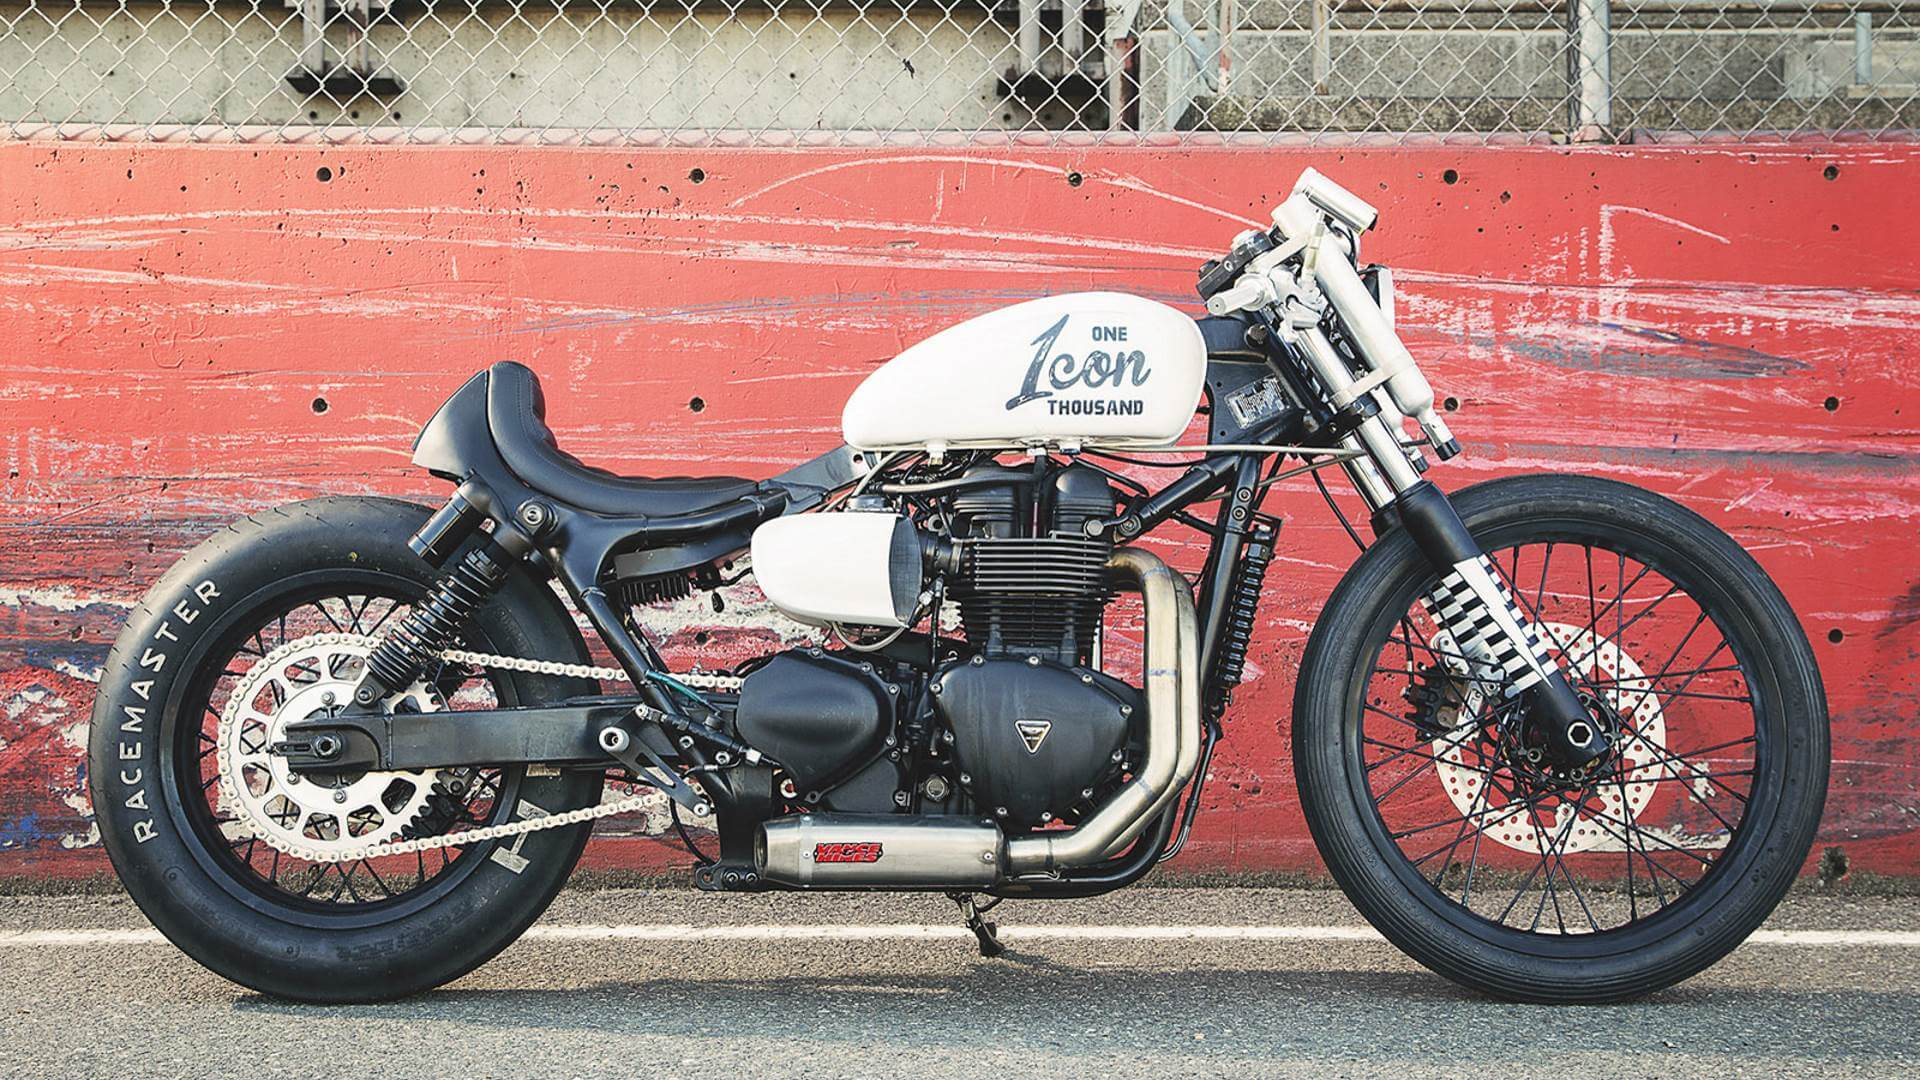 Triumph Speedmaster by ICON 1000